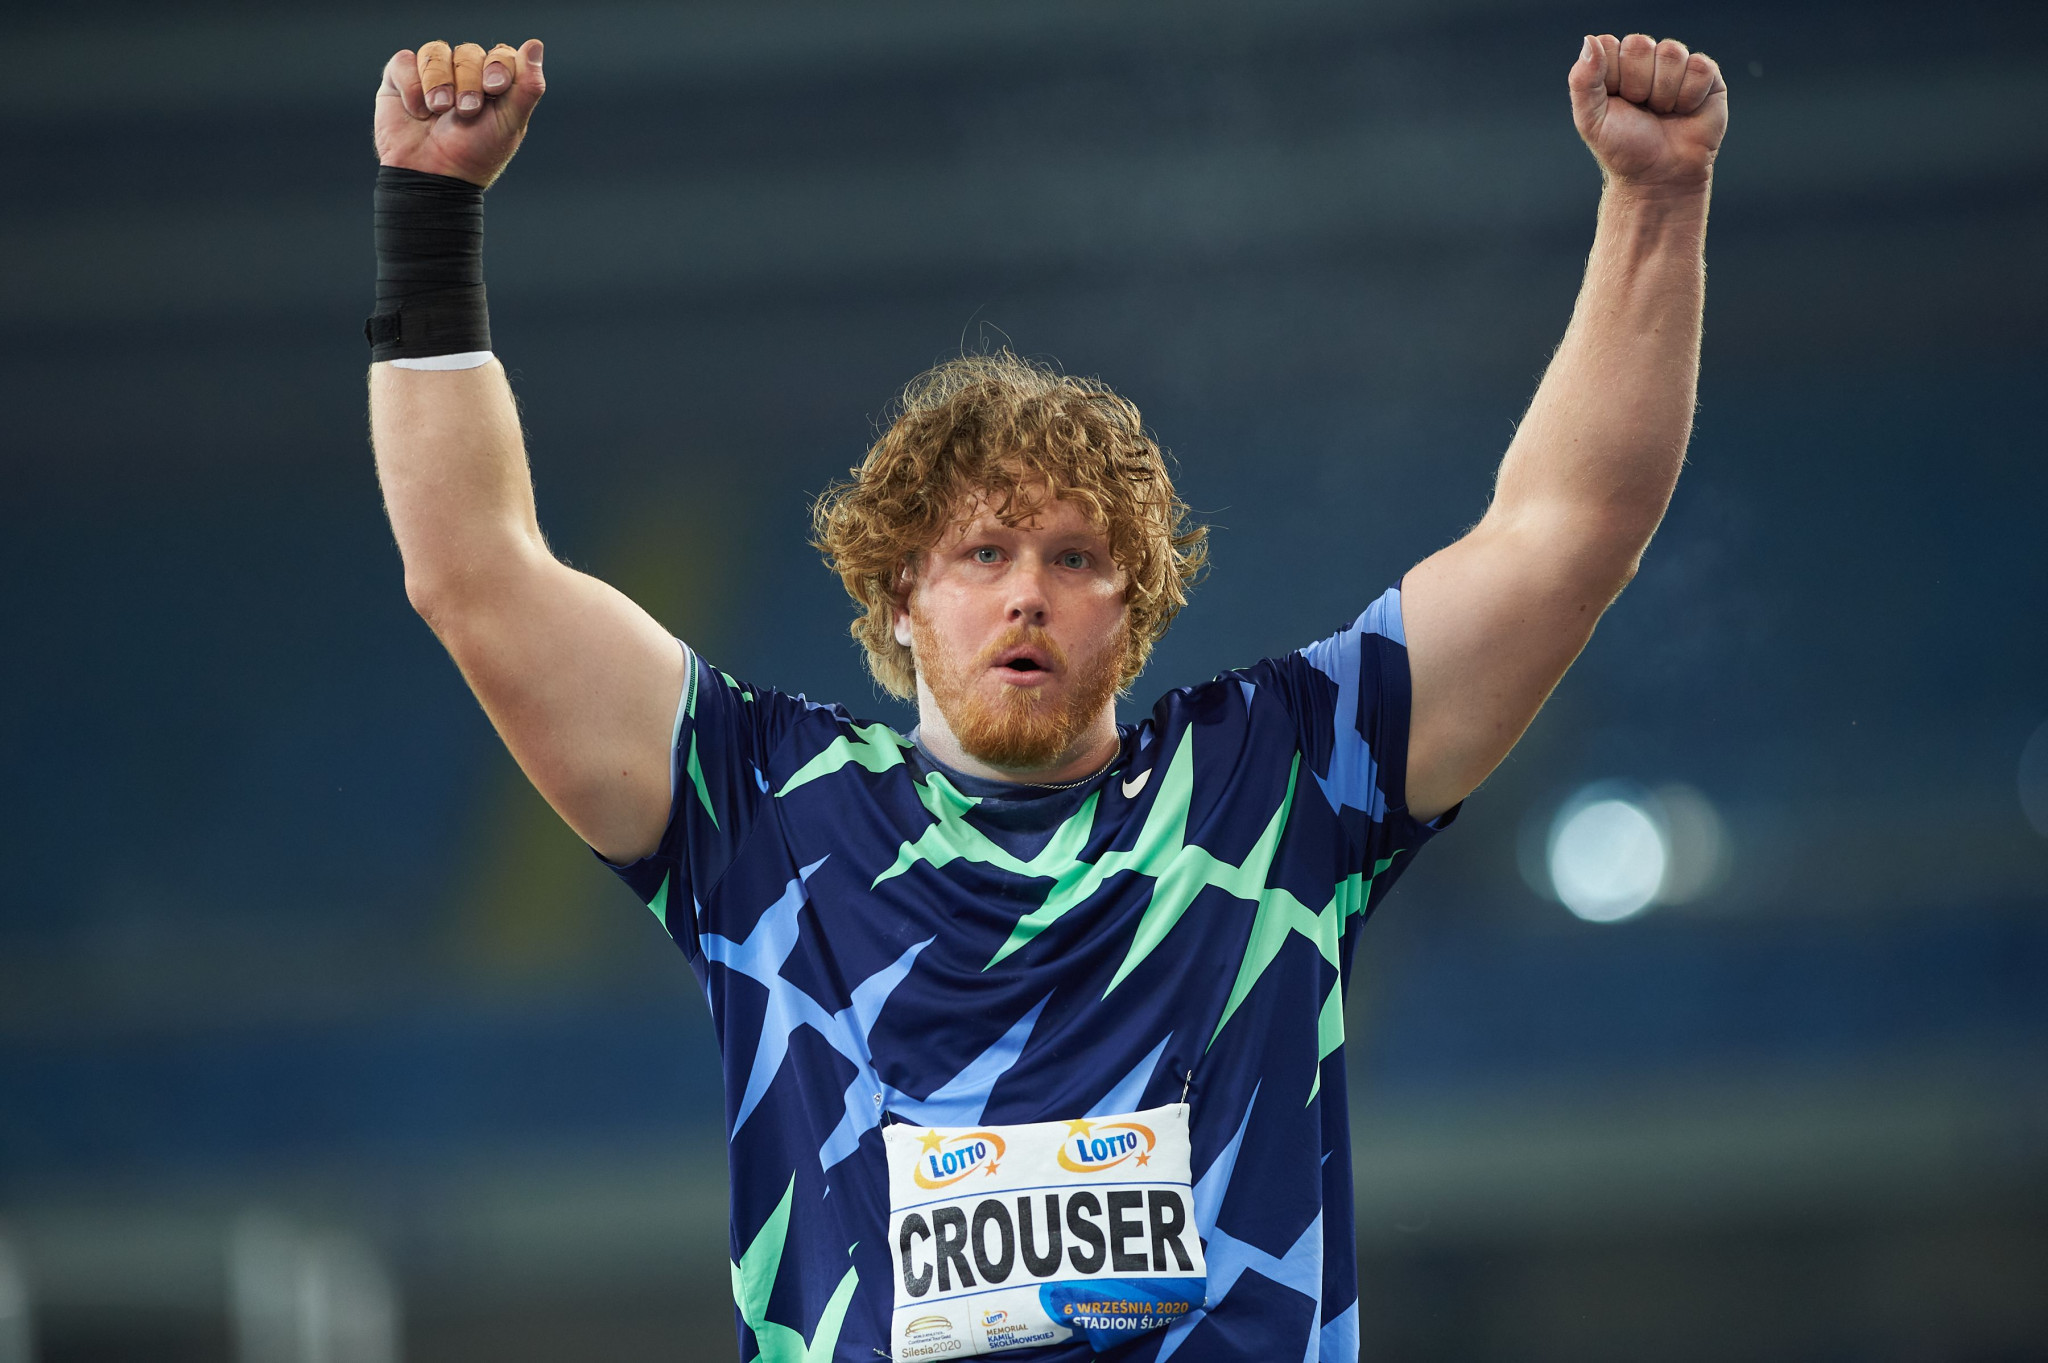 Olympic champion Crouser sets new indoor shot put world record